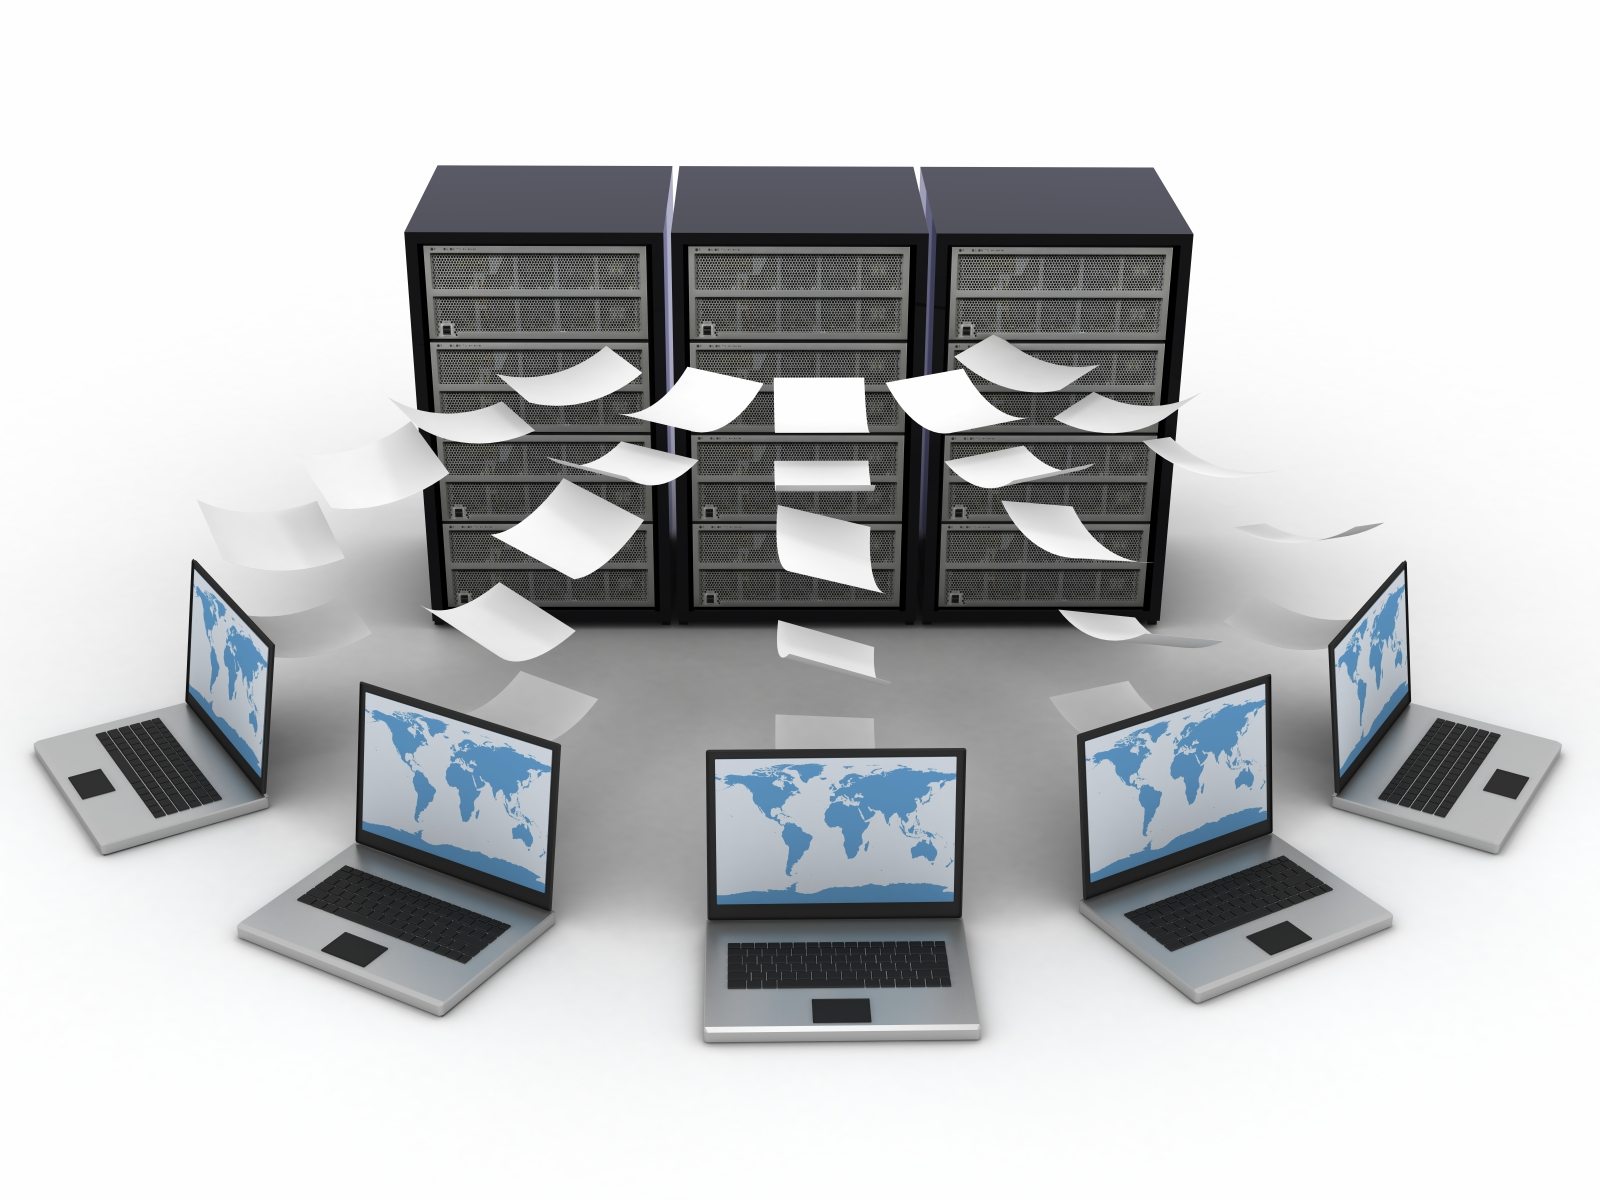 Data backup solutions pinnacle computer services evansville in